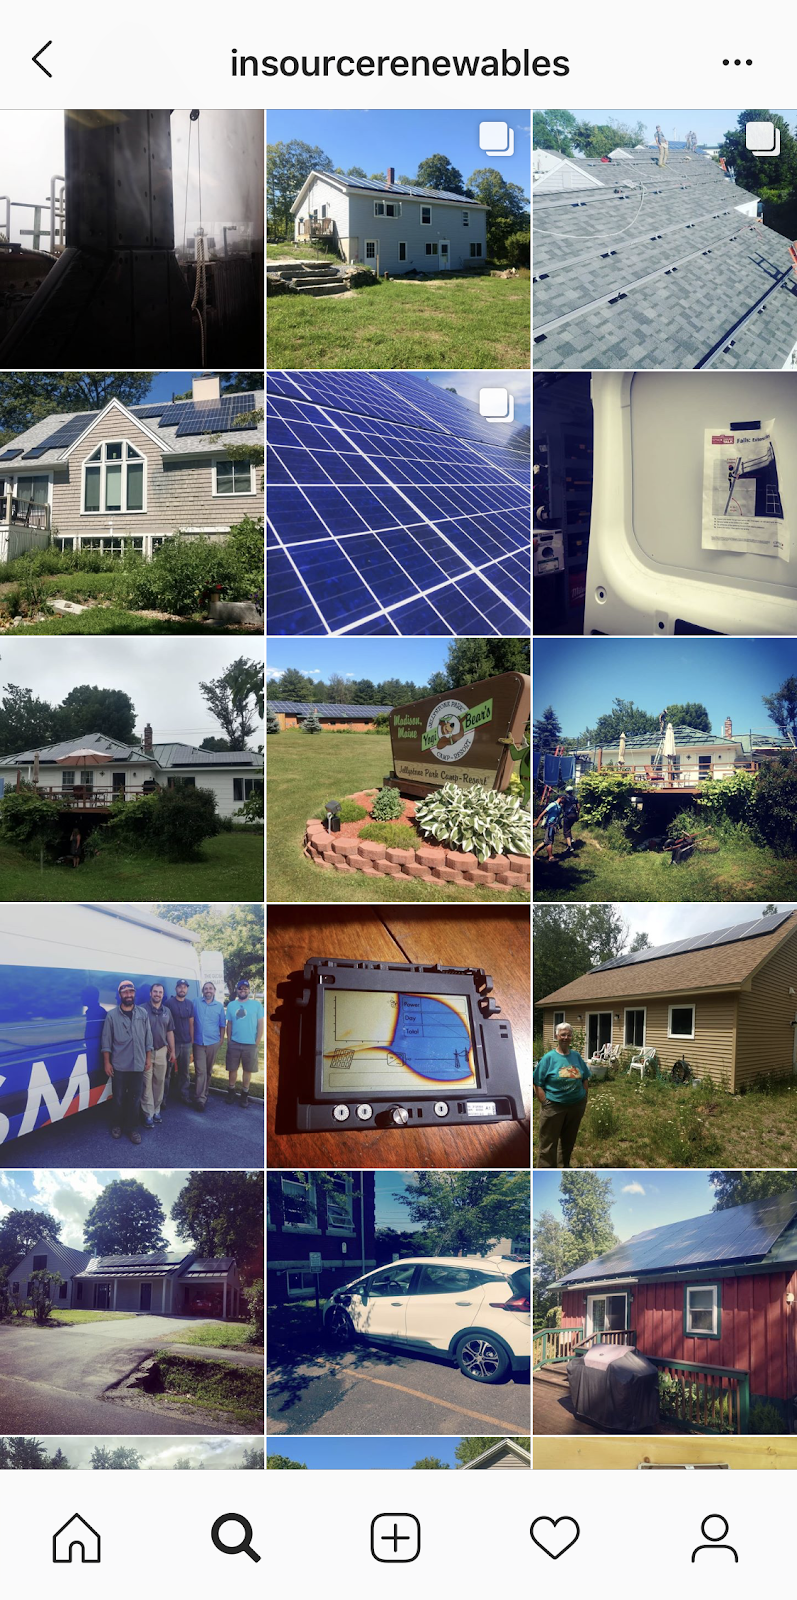 Insource Renewables Instagram Feed